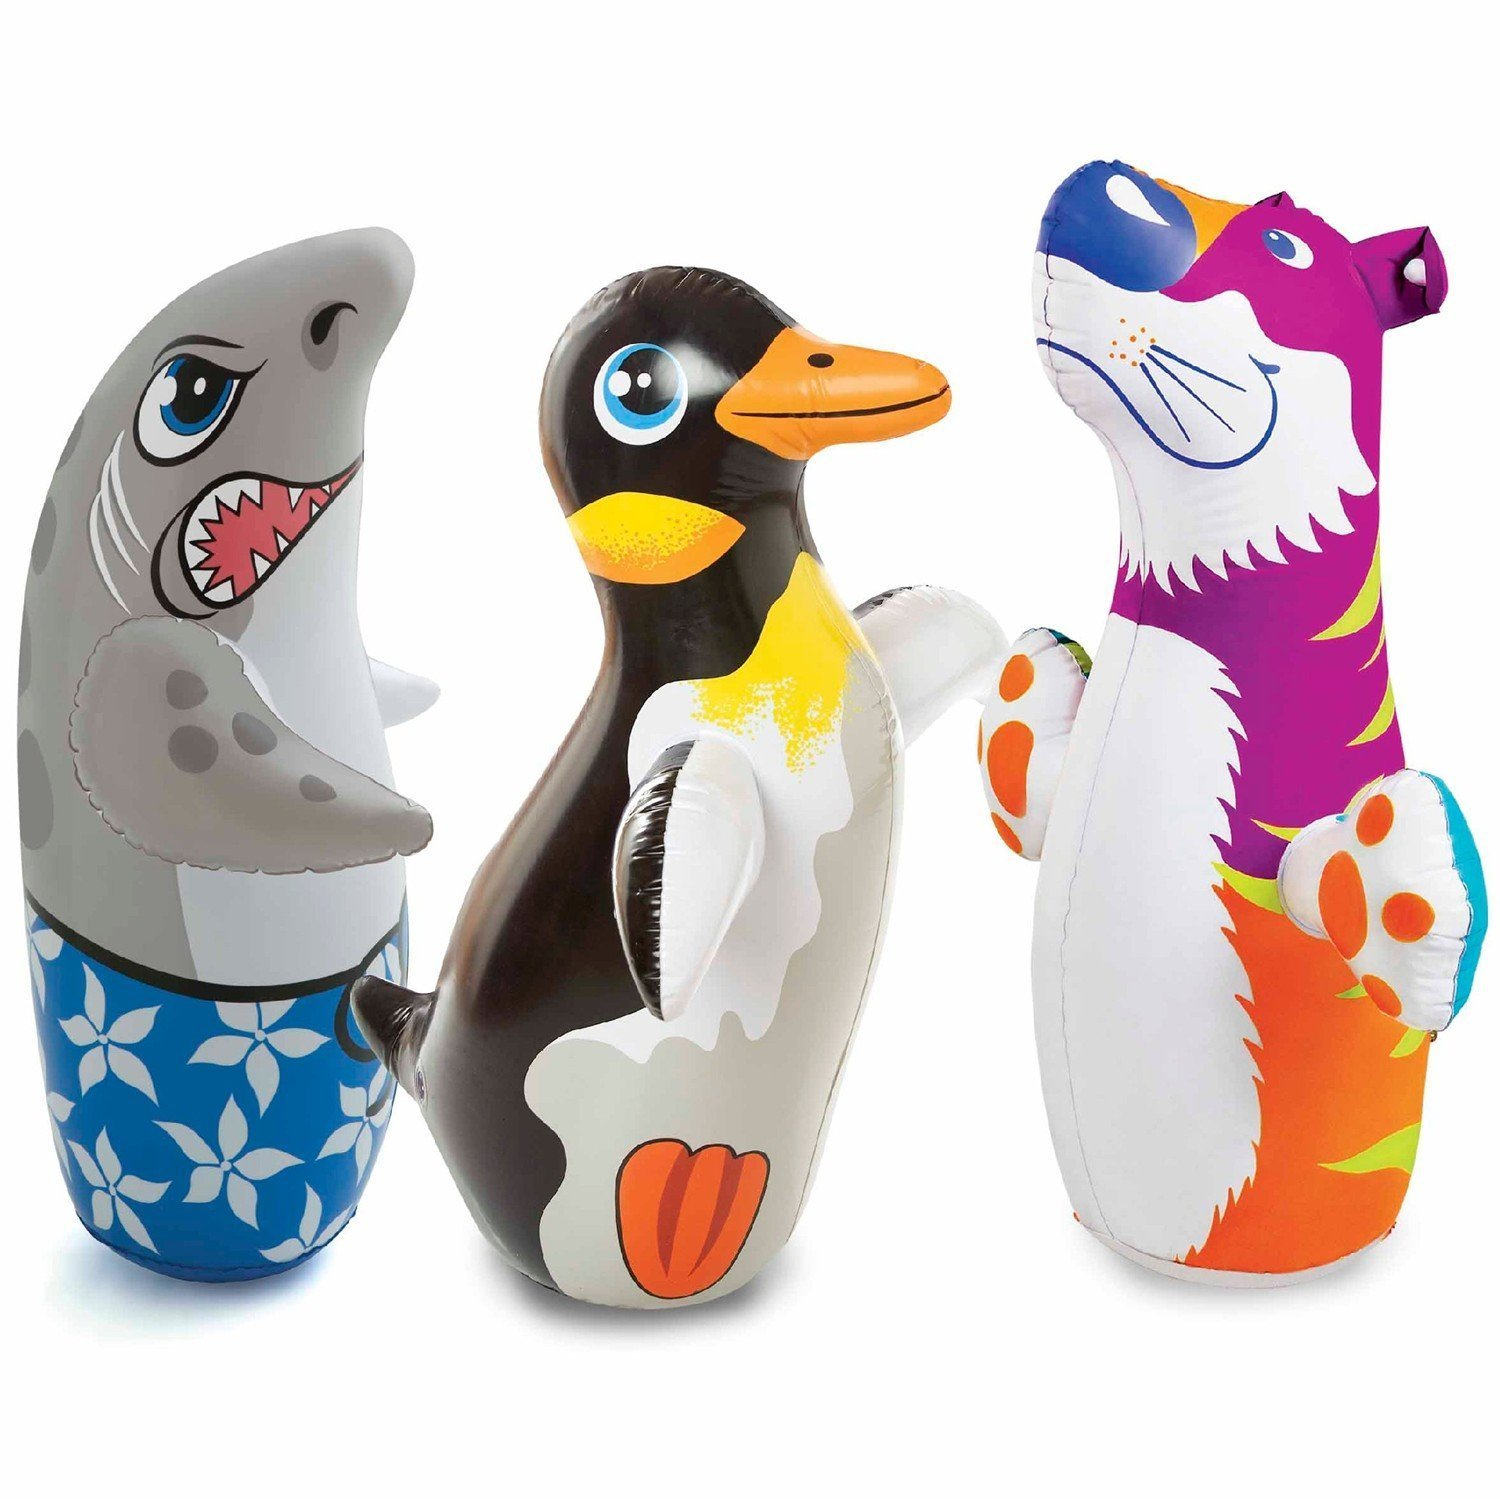 1 X 3D Bop Bag Blow up Inflatable Animals Styles Vary